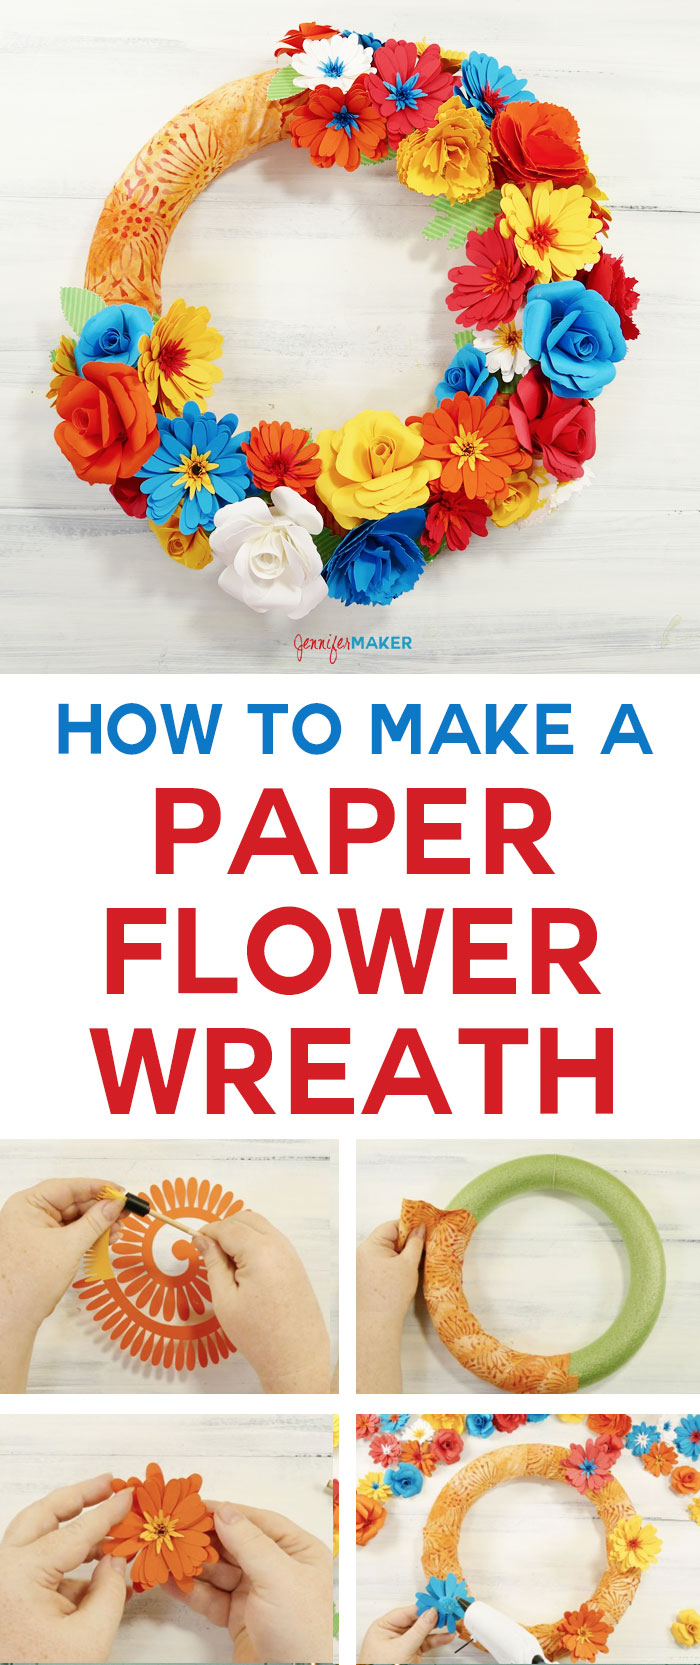 How to make a paper flower wreath the crafty blog stalker paper flower wreath cricut explore handmade paper flowers easy home decor diy mightylinksfo